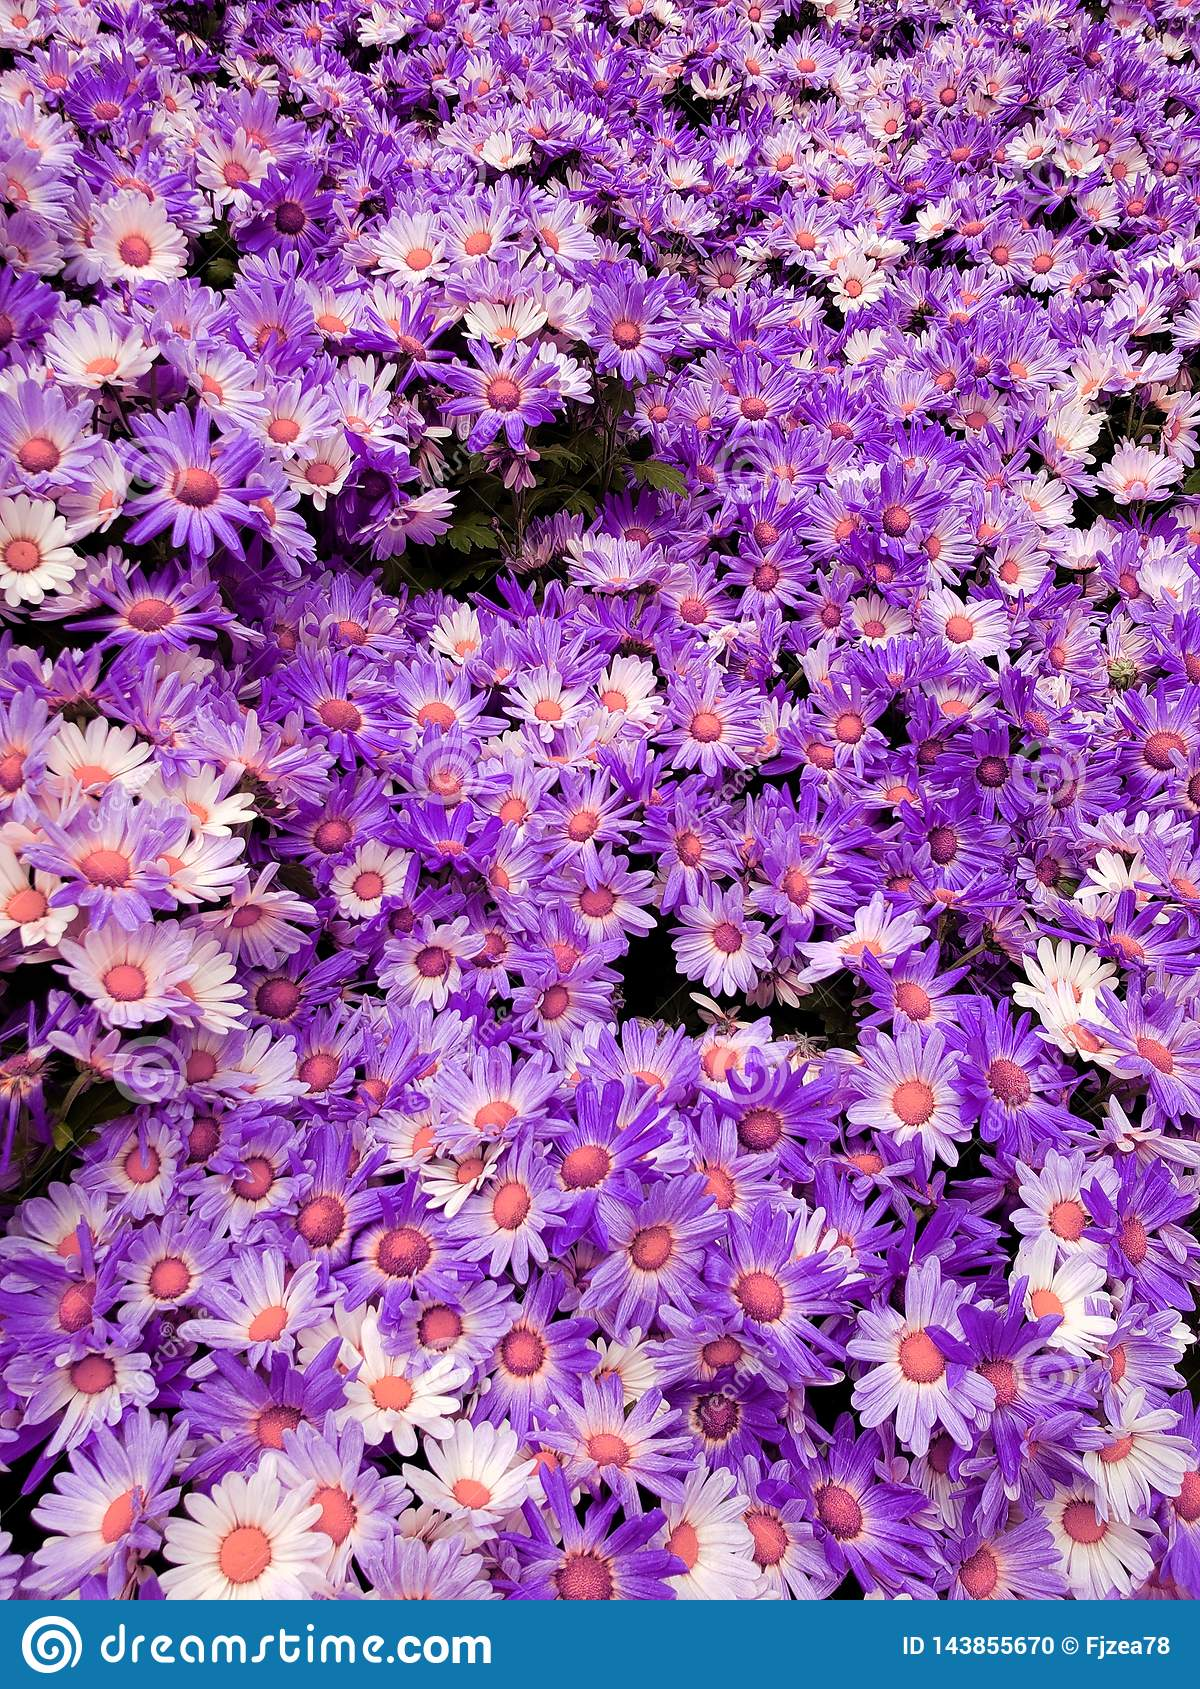 purple daisy flowers in a botanical garden, background and texture